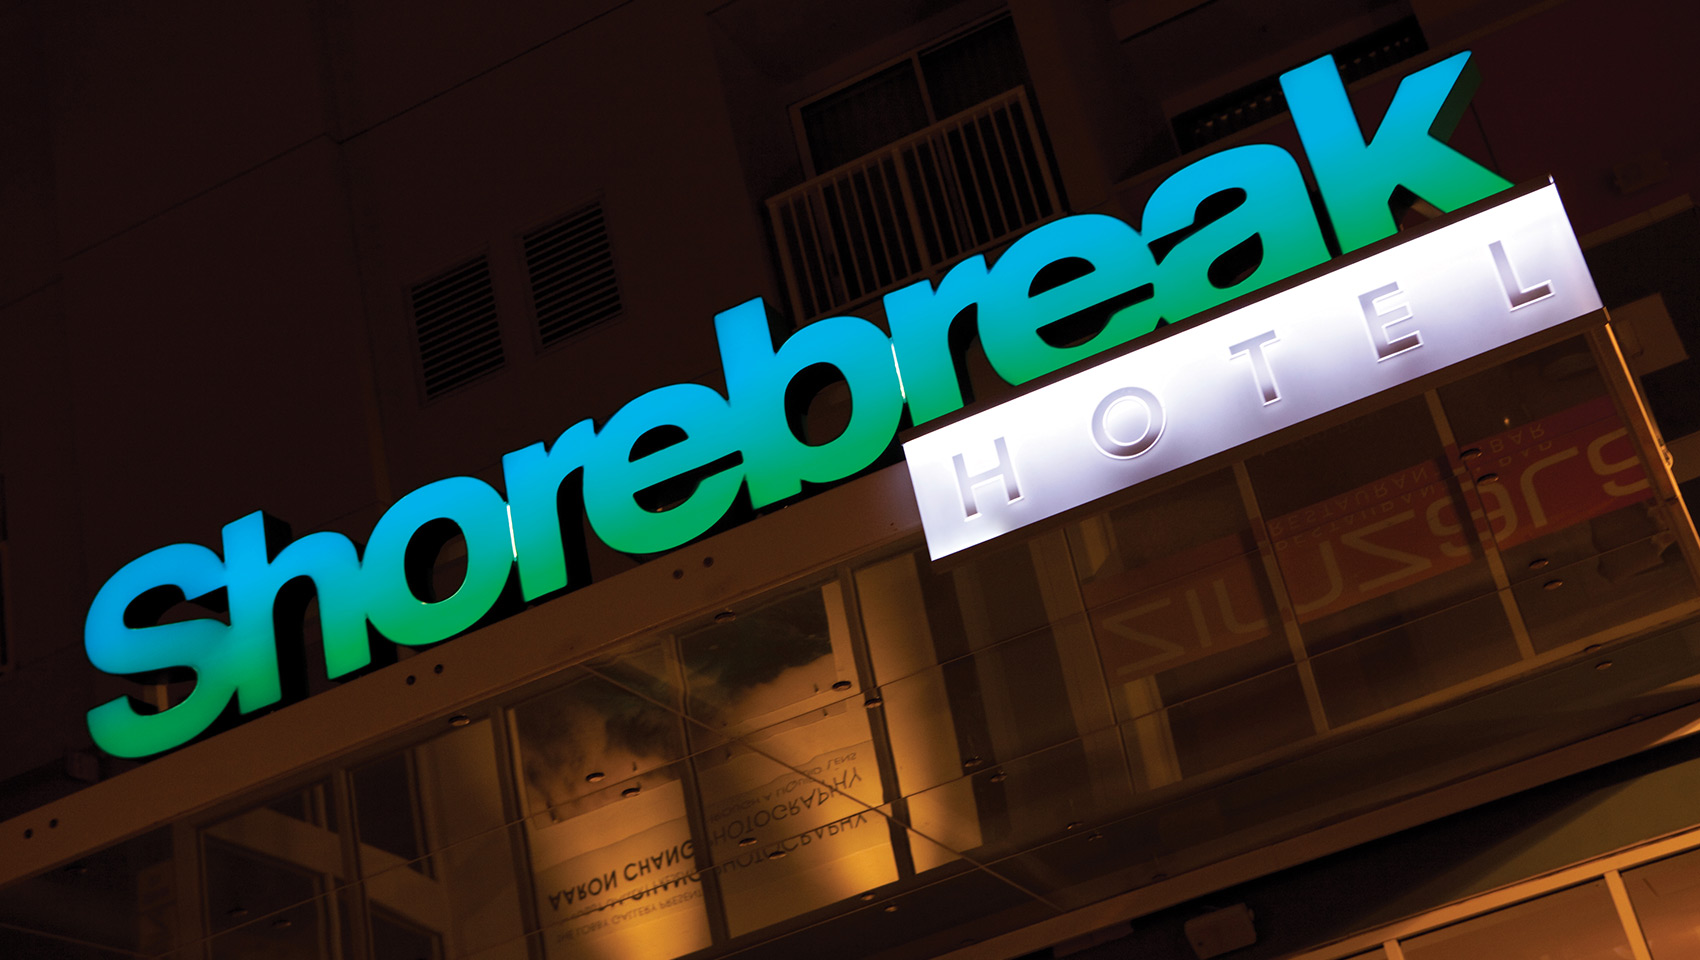 shorebreak hotel sign at night